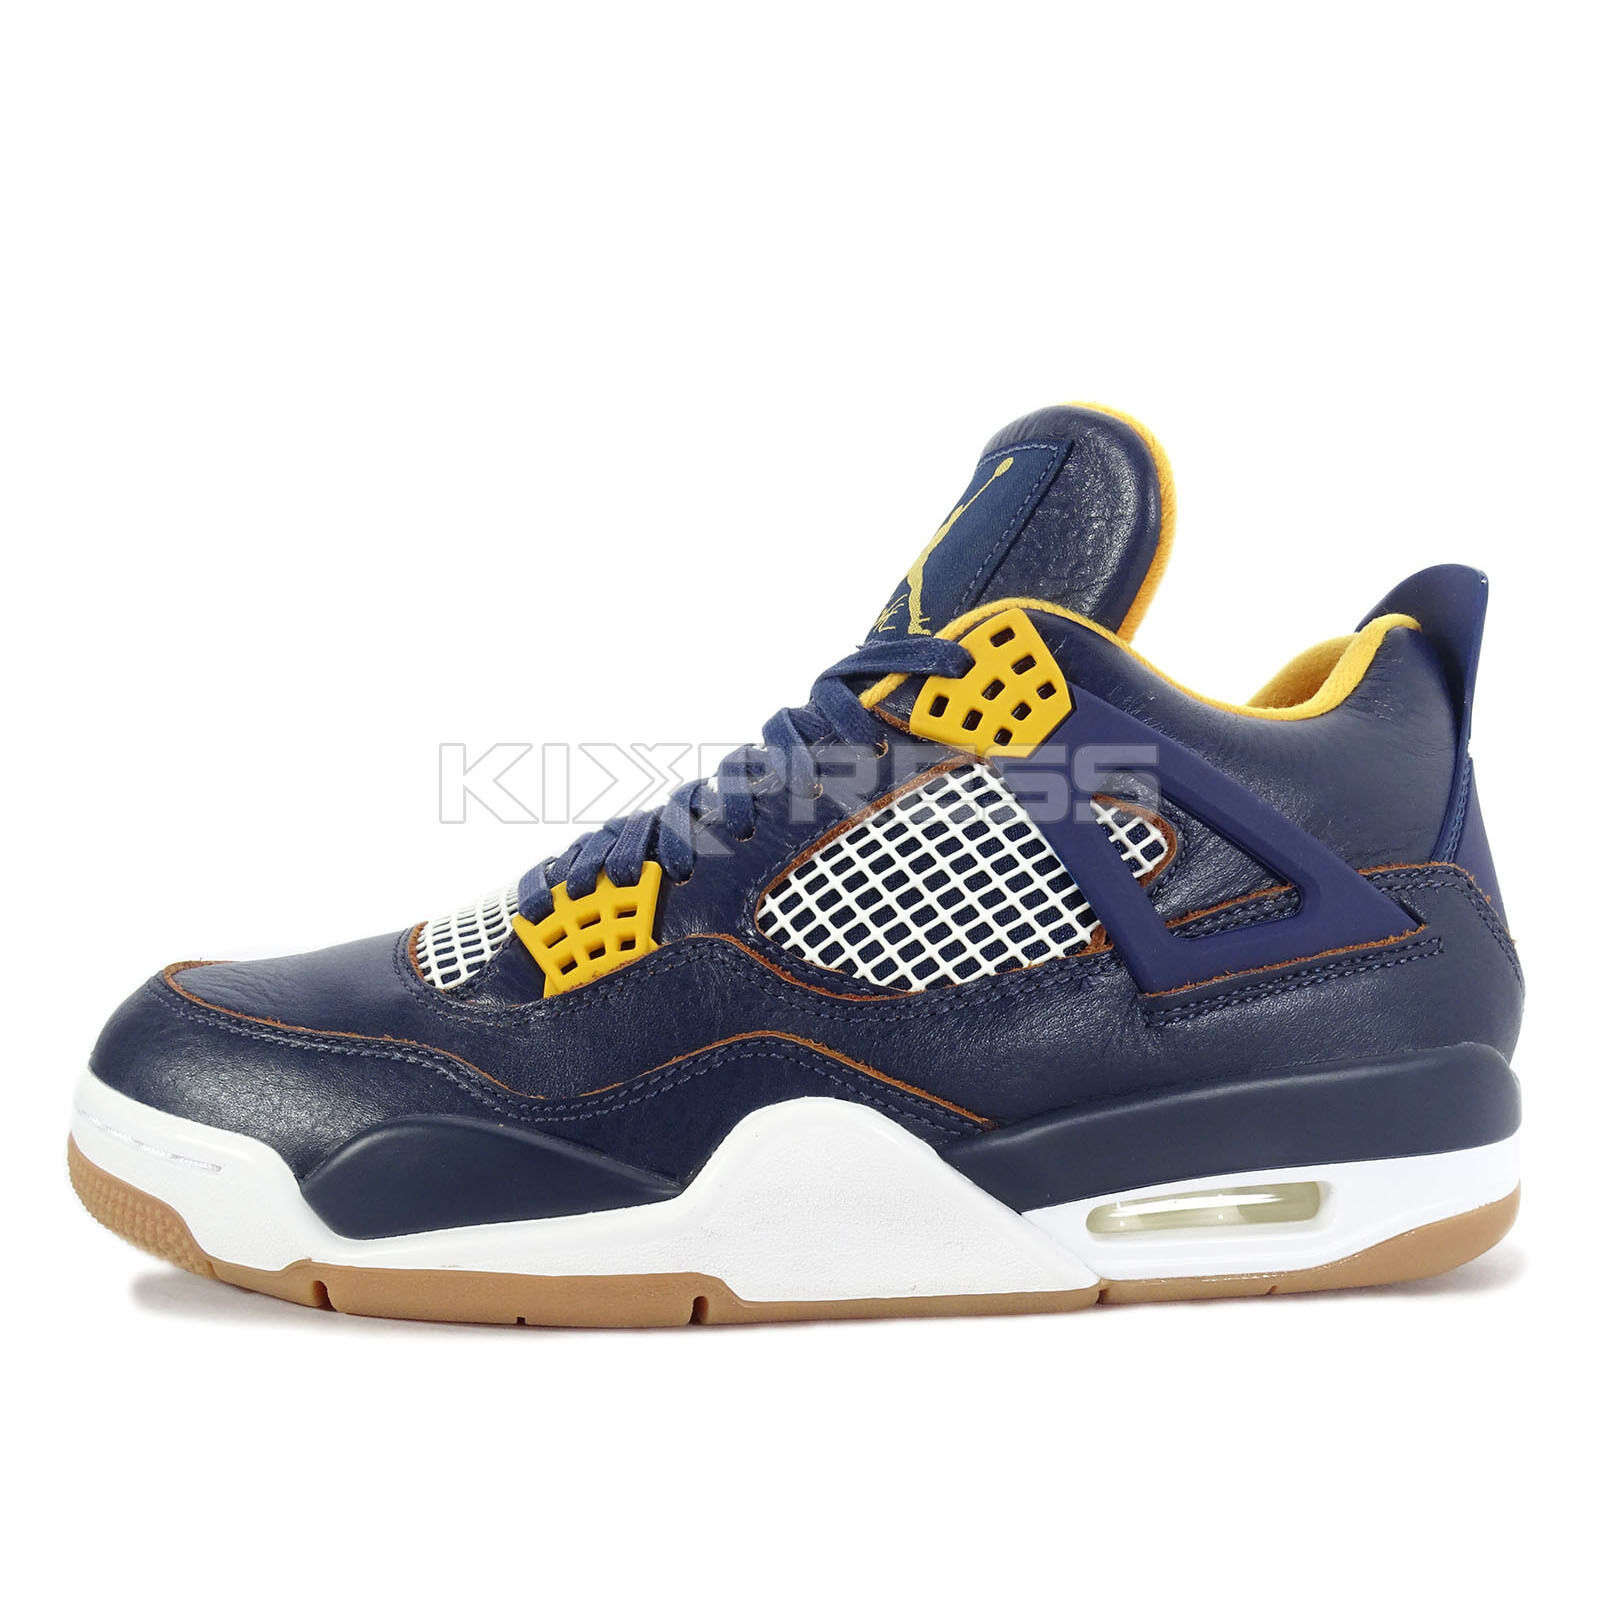 Nike Air Jordan 4 Retro [308497-425] Basketball Dunk From Above Navy/Gold-White